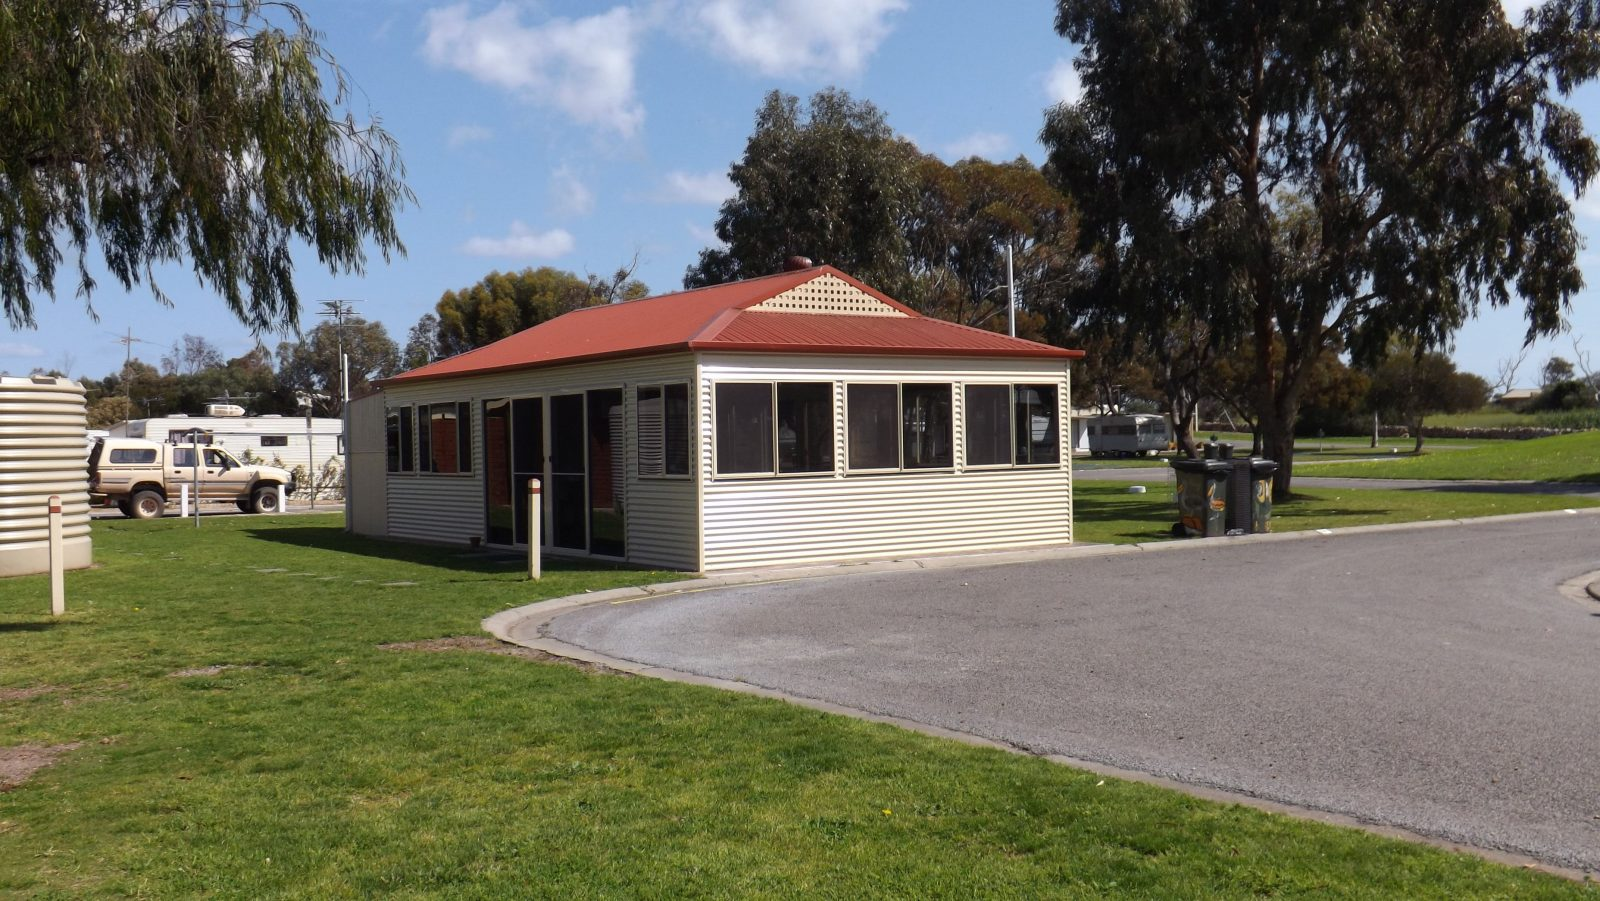 Camp ground kitchen available to all park patrons.